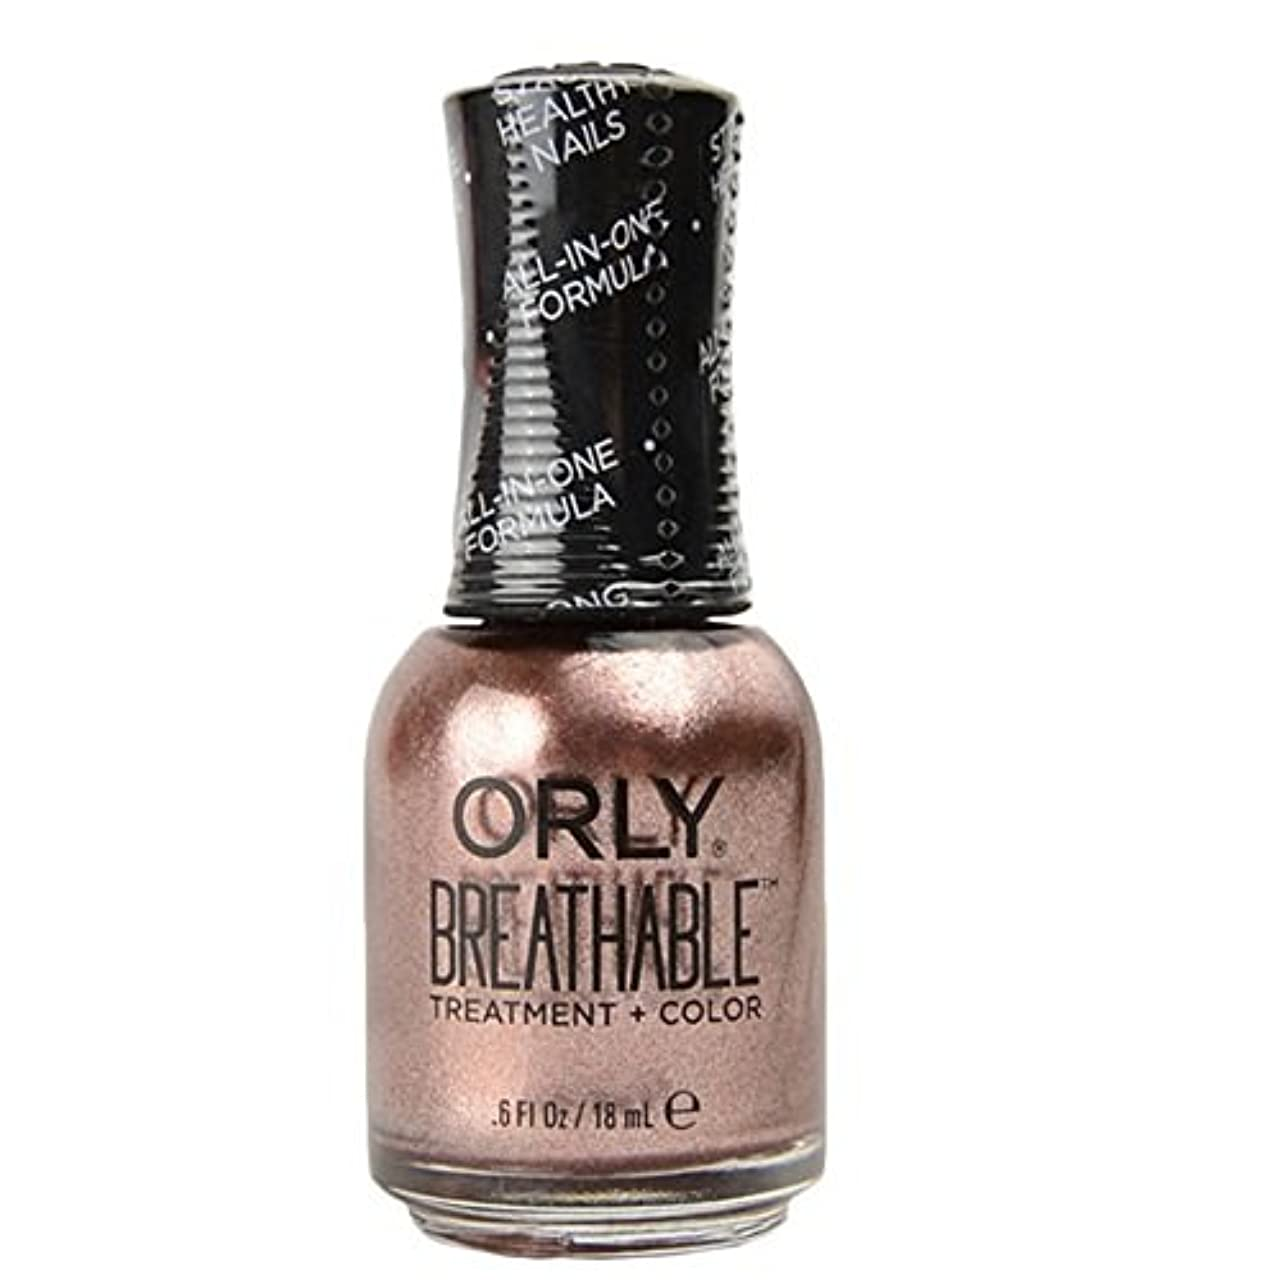 Orly Breathable Treatment + Color Nail Lacquer - Fairy Godmother - 0.6oz / 18ml